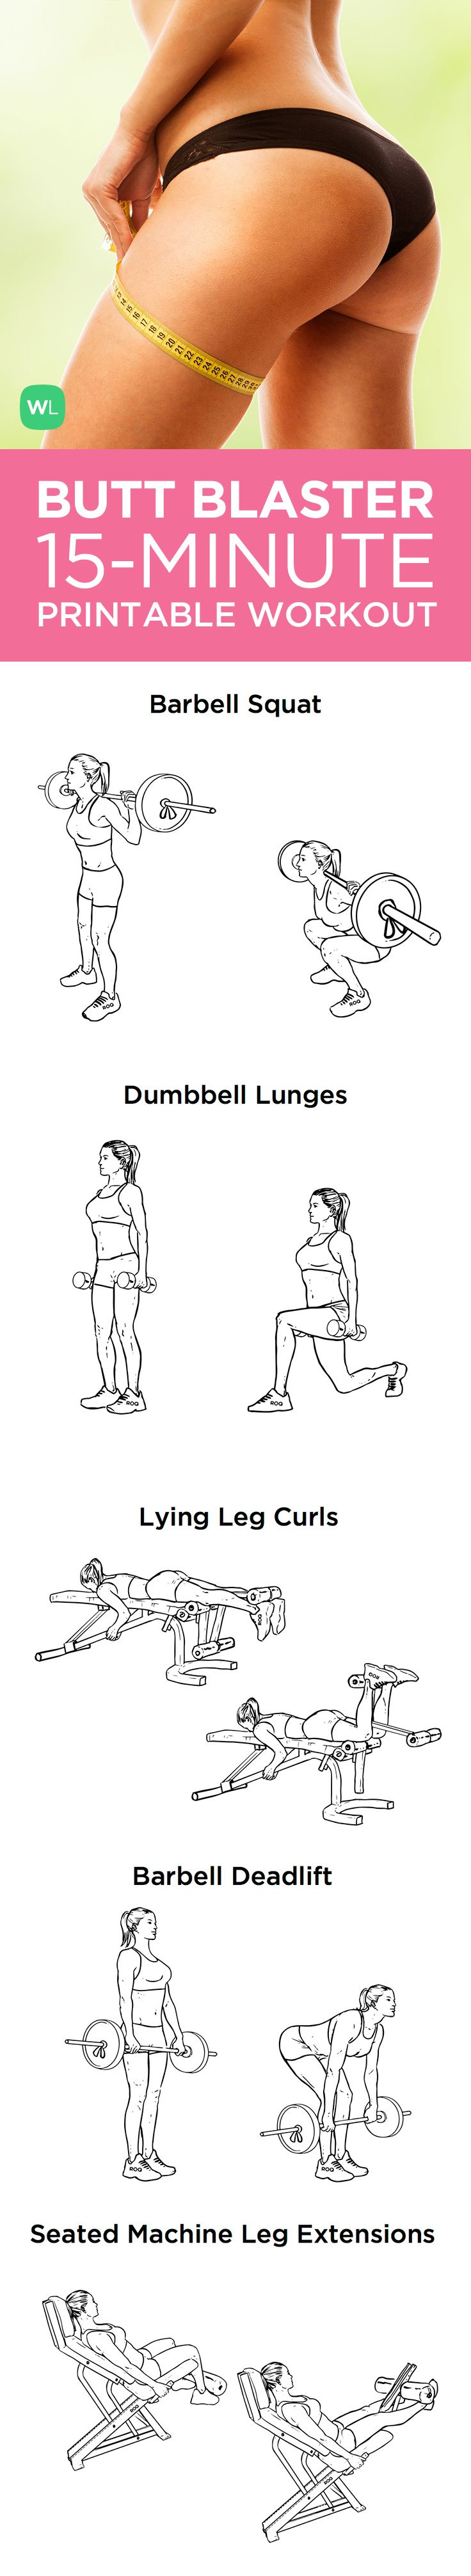 15-Minute Butt Blaster Printable Workout for Sexy Toned Glutes and Thighs – Want to firm up your lower body? This workout is going to add sexy shape to your lower body and help give you a look that turns heads everywhere you go. ✳ Visit http://WorkoutLabs.com/workout-plans/butt-blaster-15-minute-workout-for-sexy-toned-glutes-thighs/